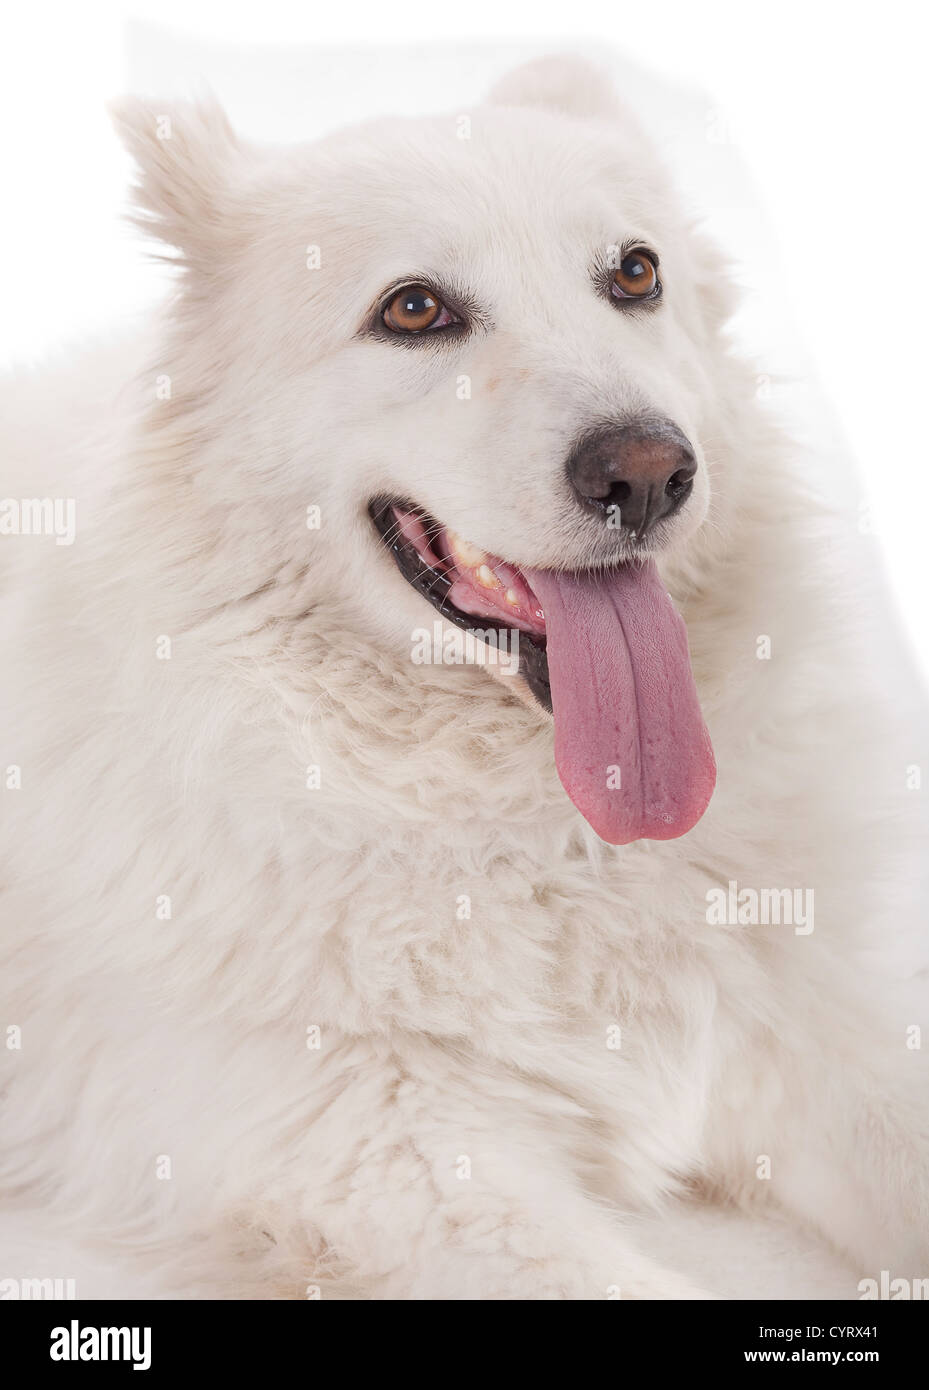 portrait of a beautiful purebred white dod severesitting on a floor - Stock Image